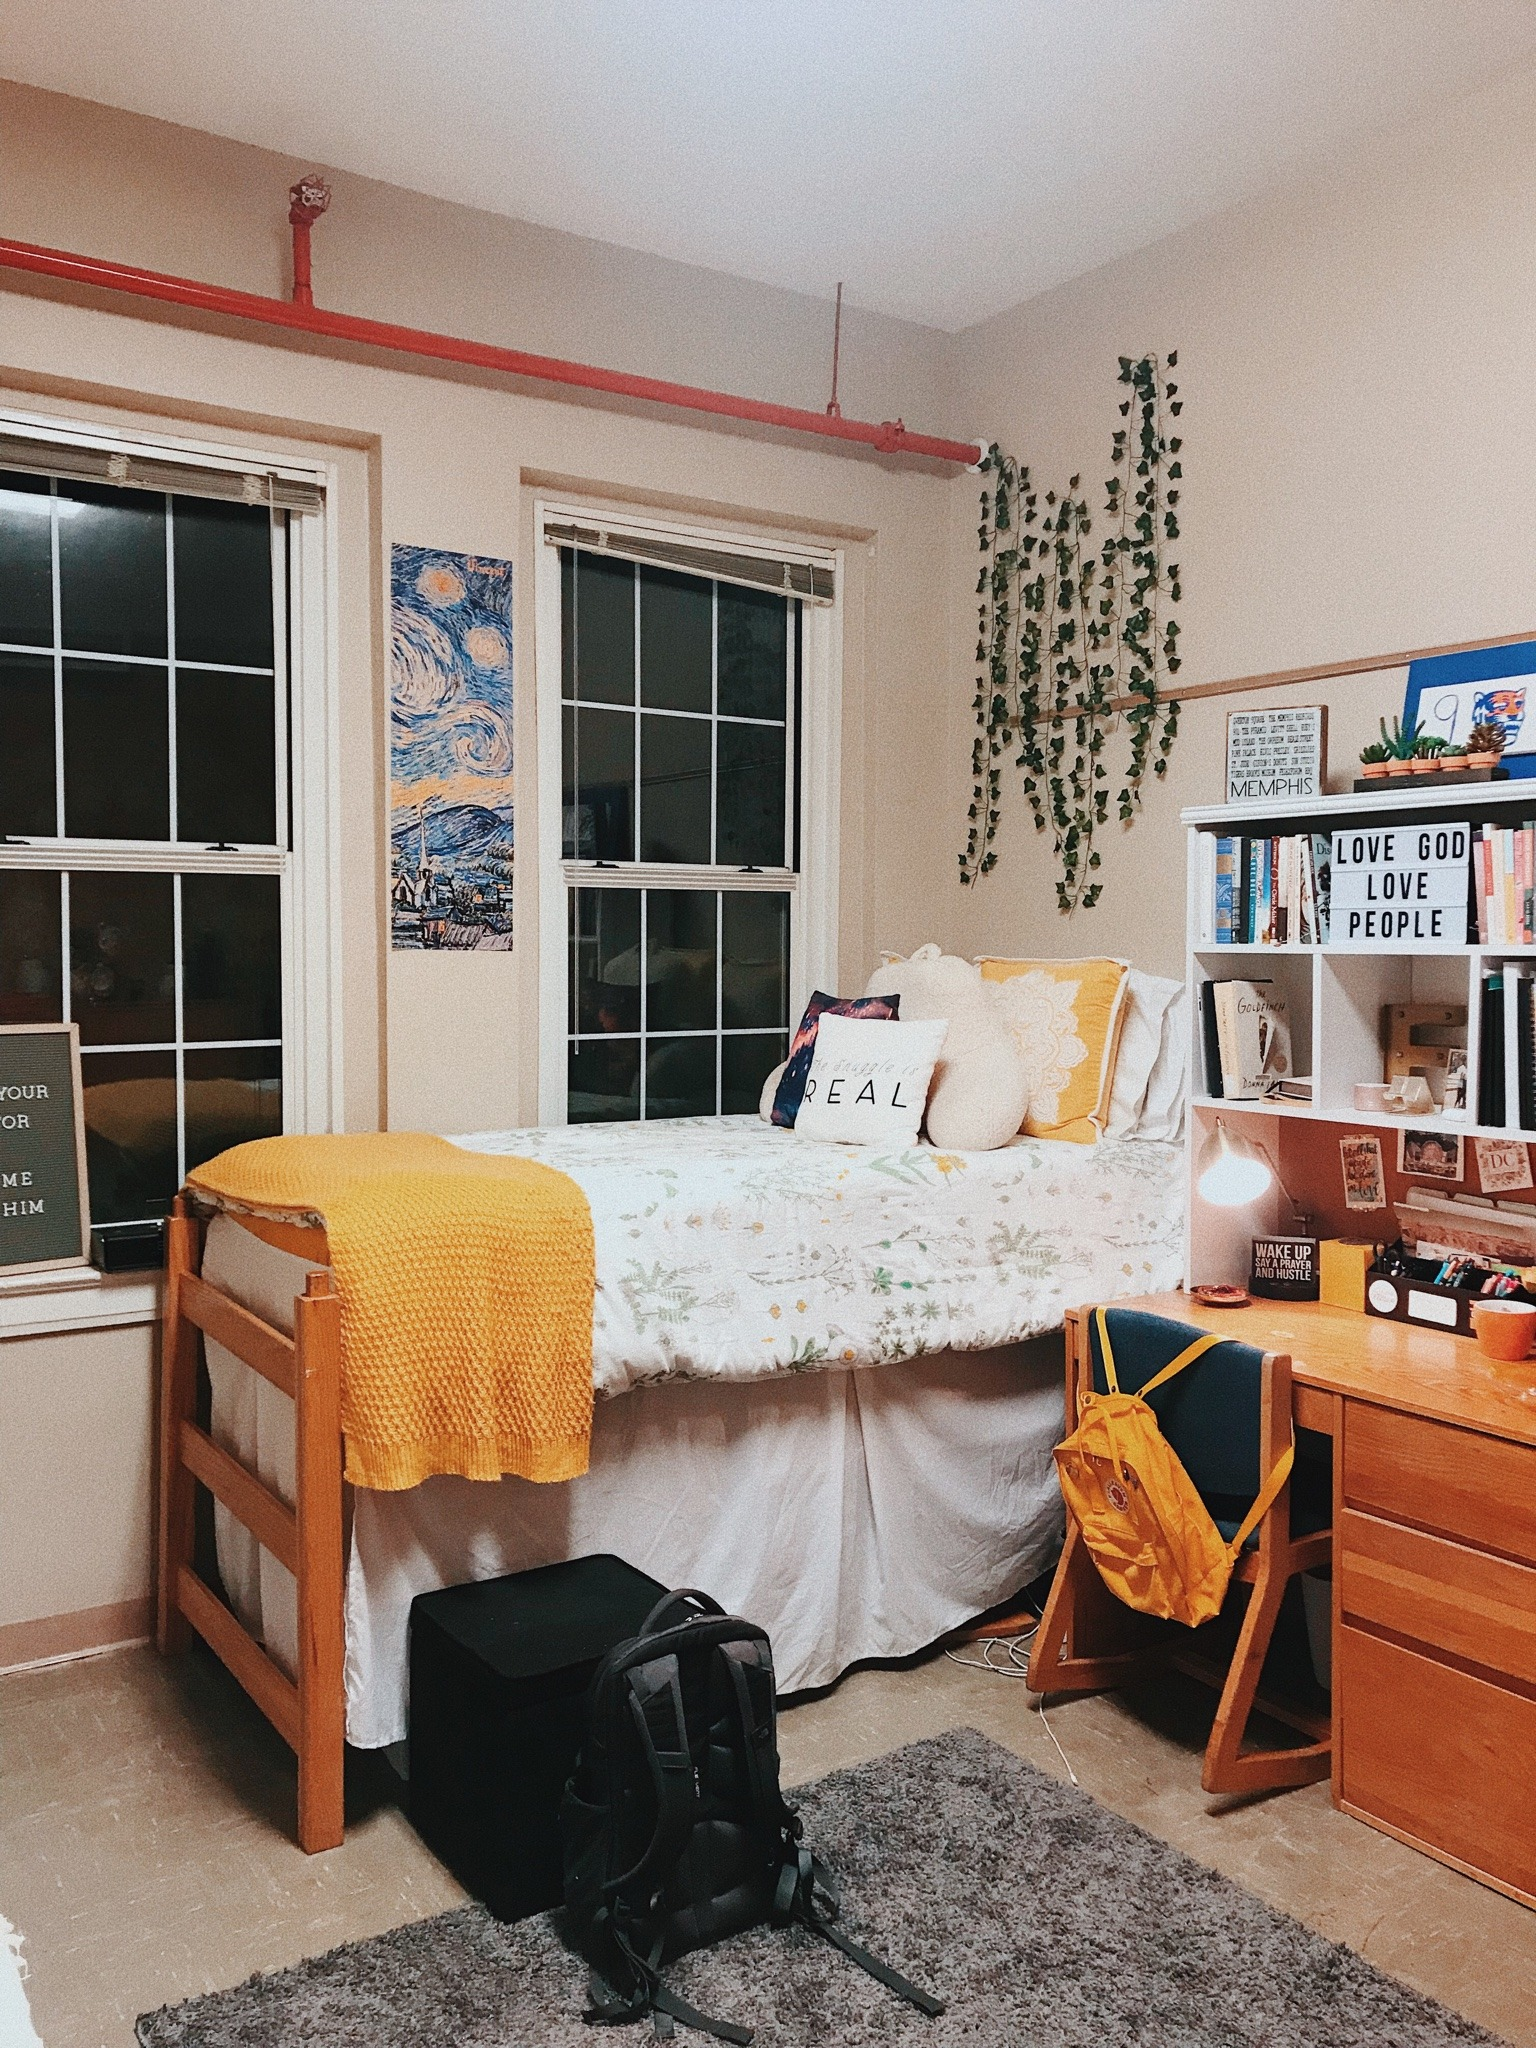 15 Items You Need for Your College Room - Society19